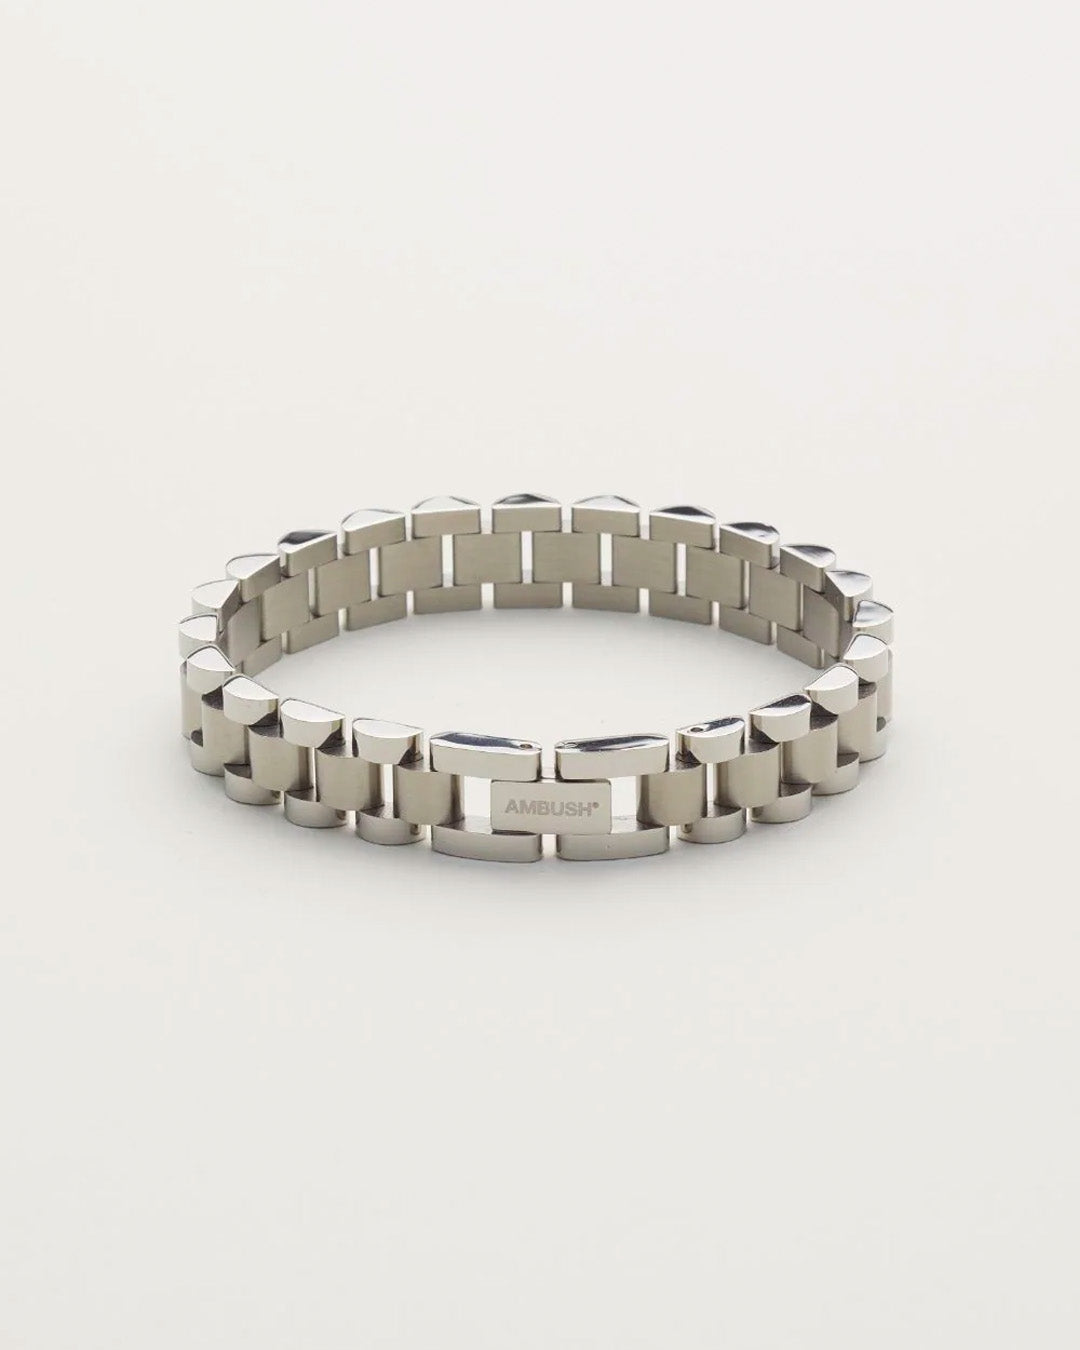 AMBUSH ROLLIE CHAIN BRACELET